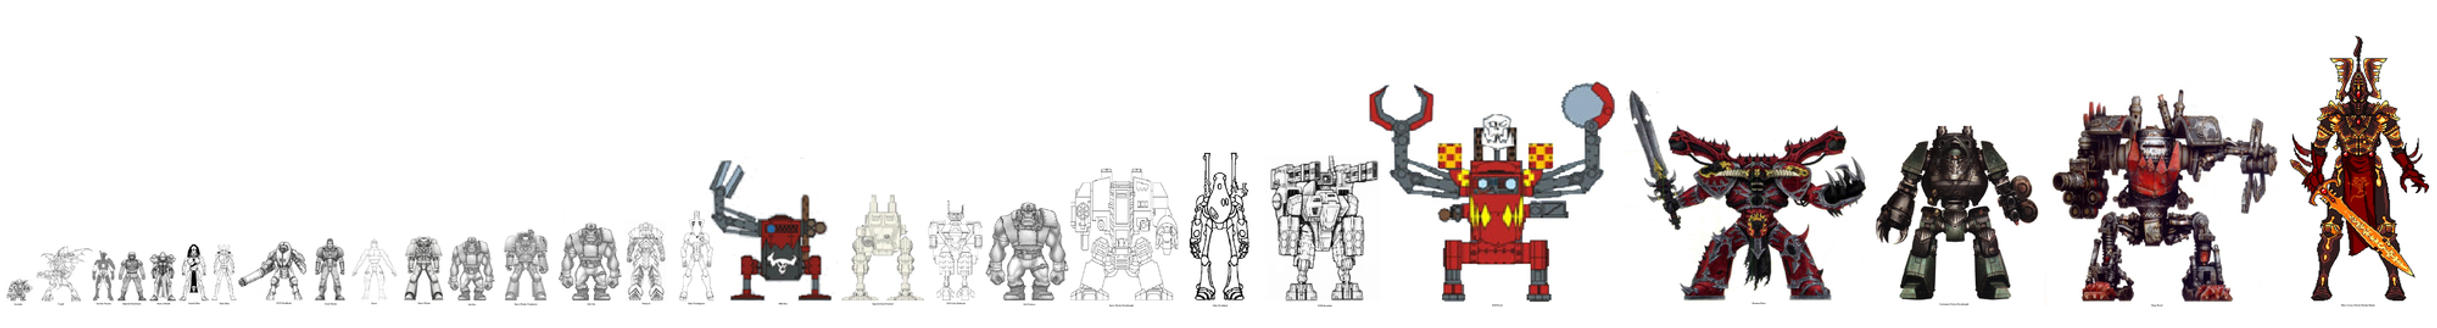 Height comparison - Species and Walkers by Hebime